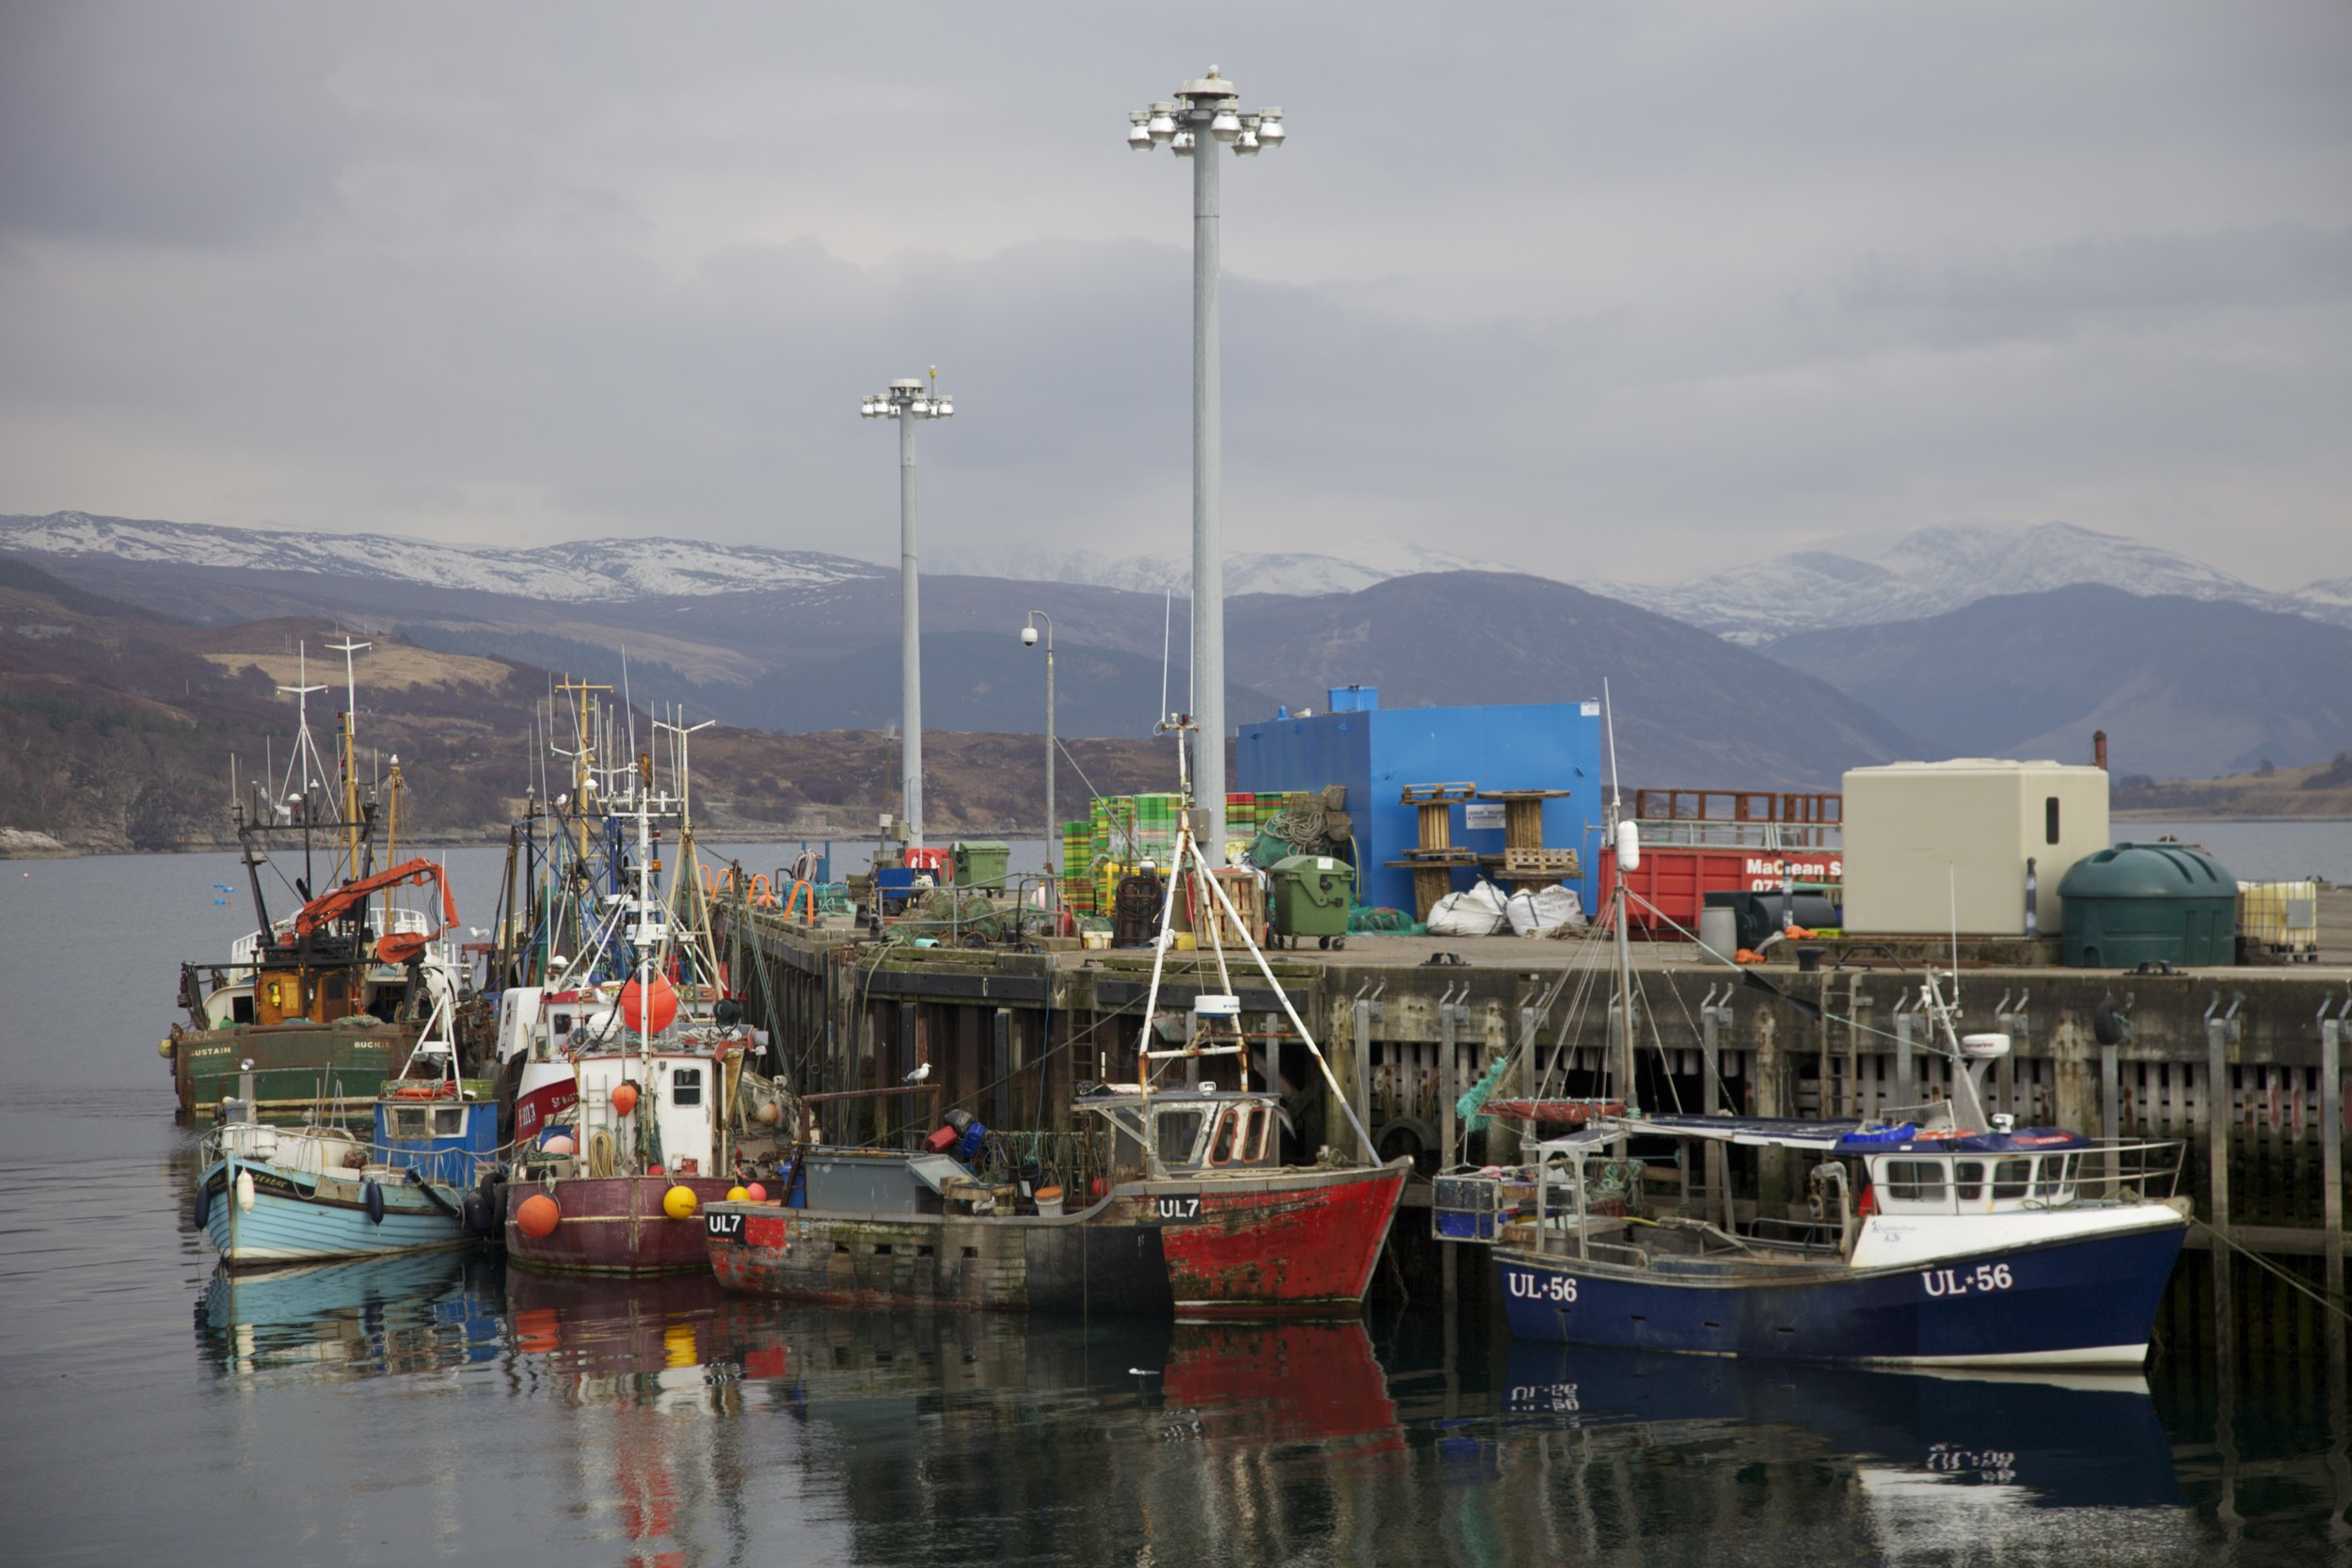 The harbor of Ullapool, Scotland, from which a lot of my maternal ancestors hail.  (Ullapool, Scotland.)